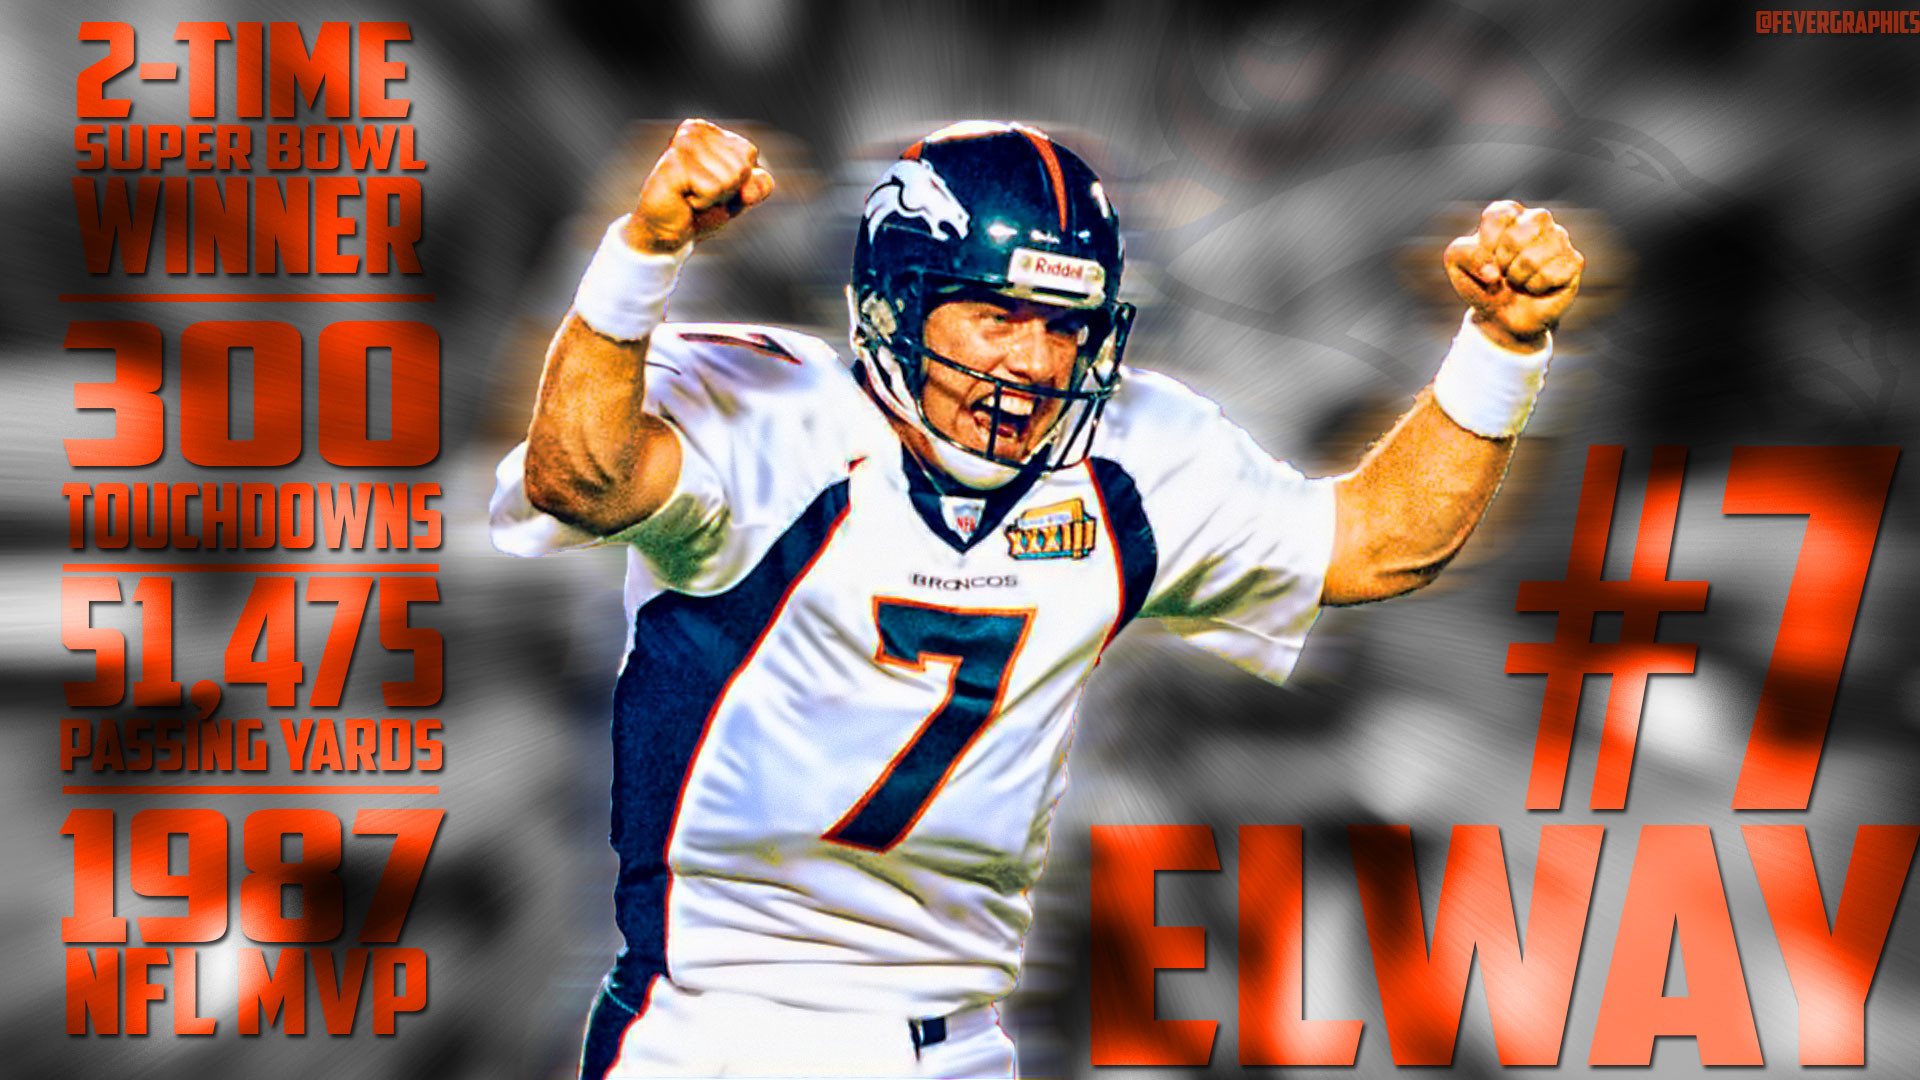 John Elway wallpaper for this Broncos sub! I hope you guys like it! I  worked really hard on it!